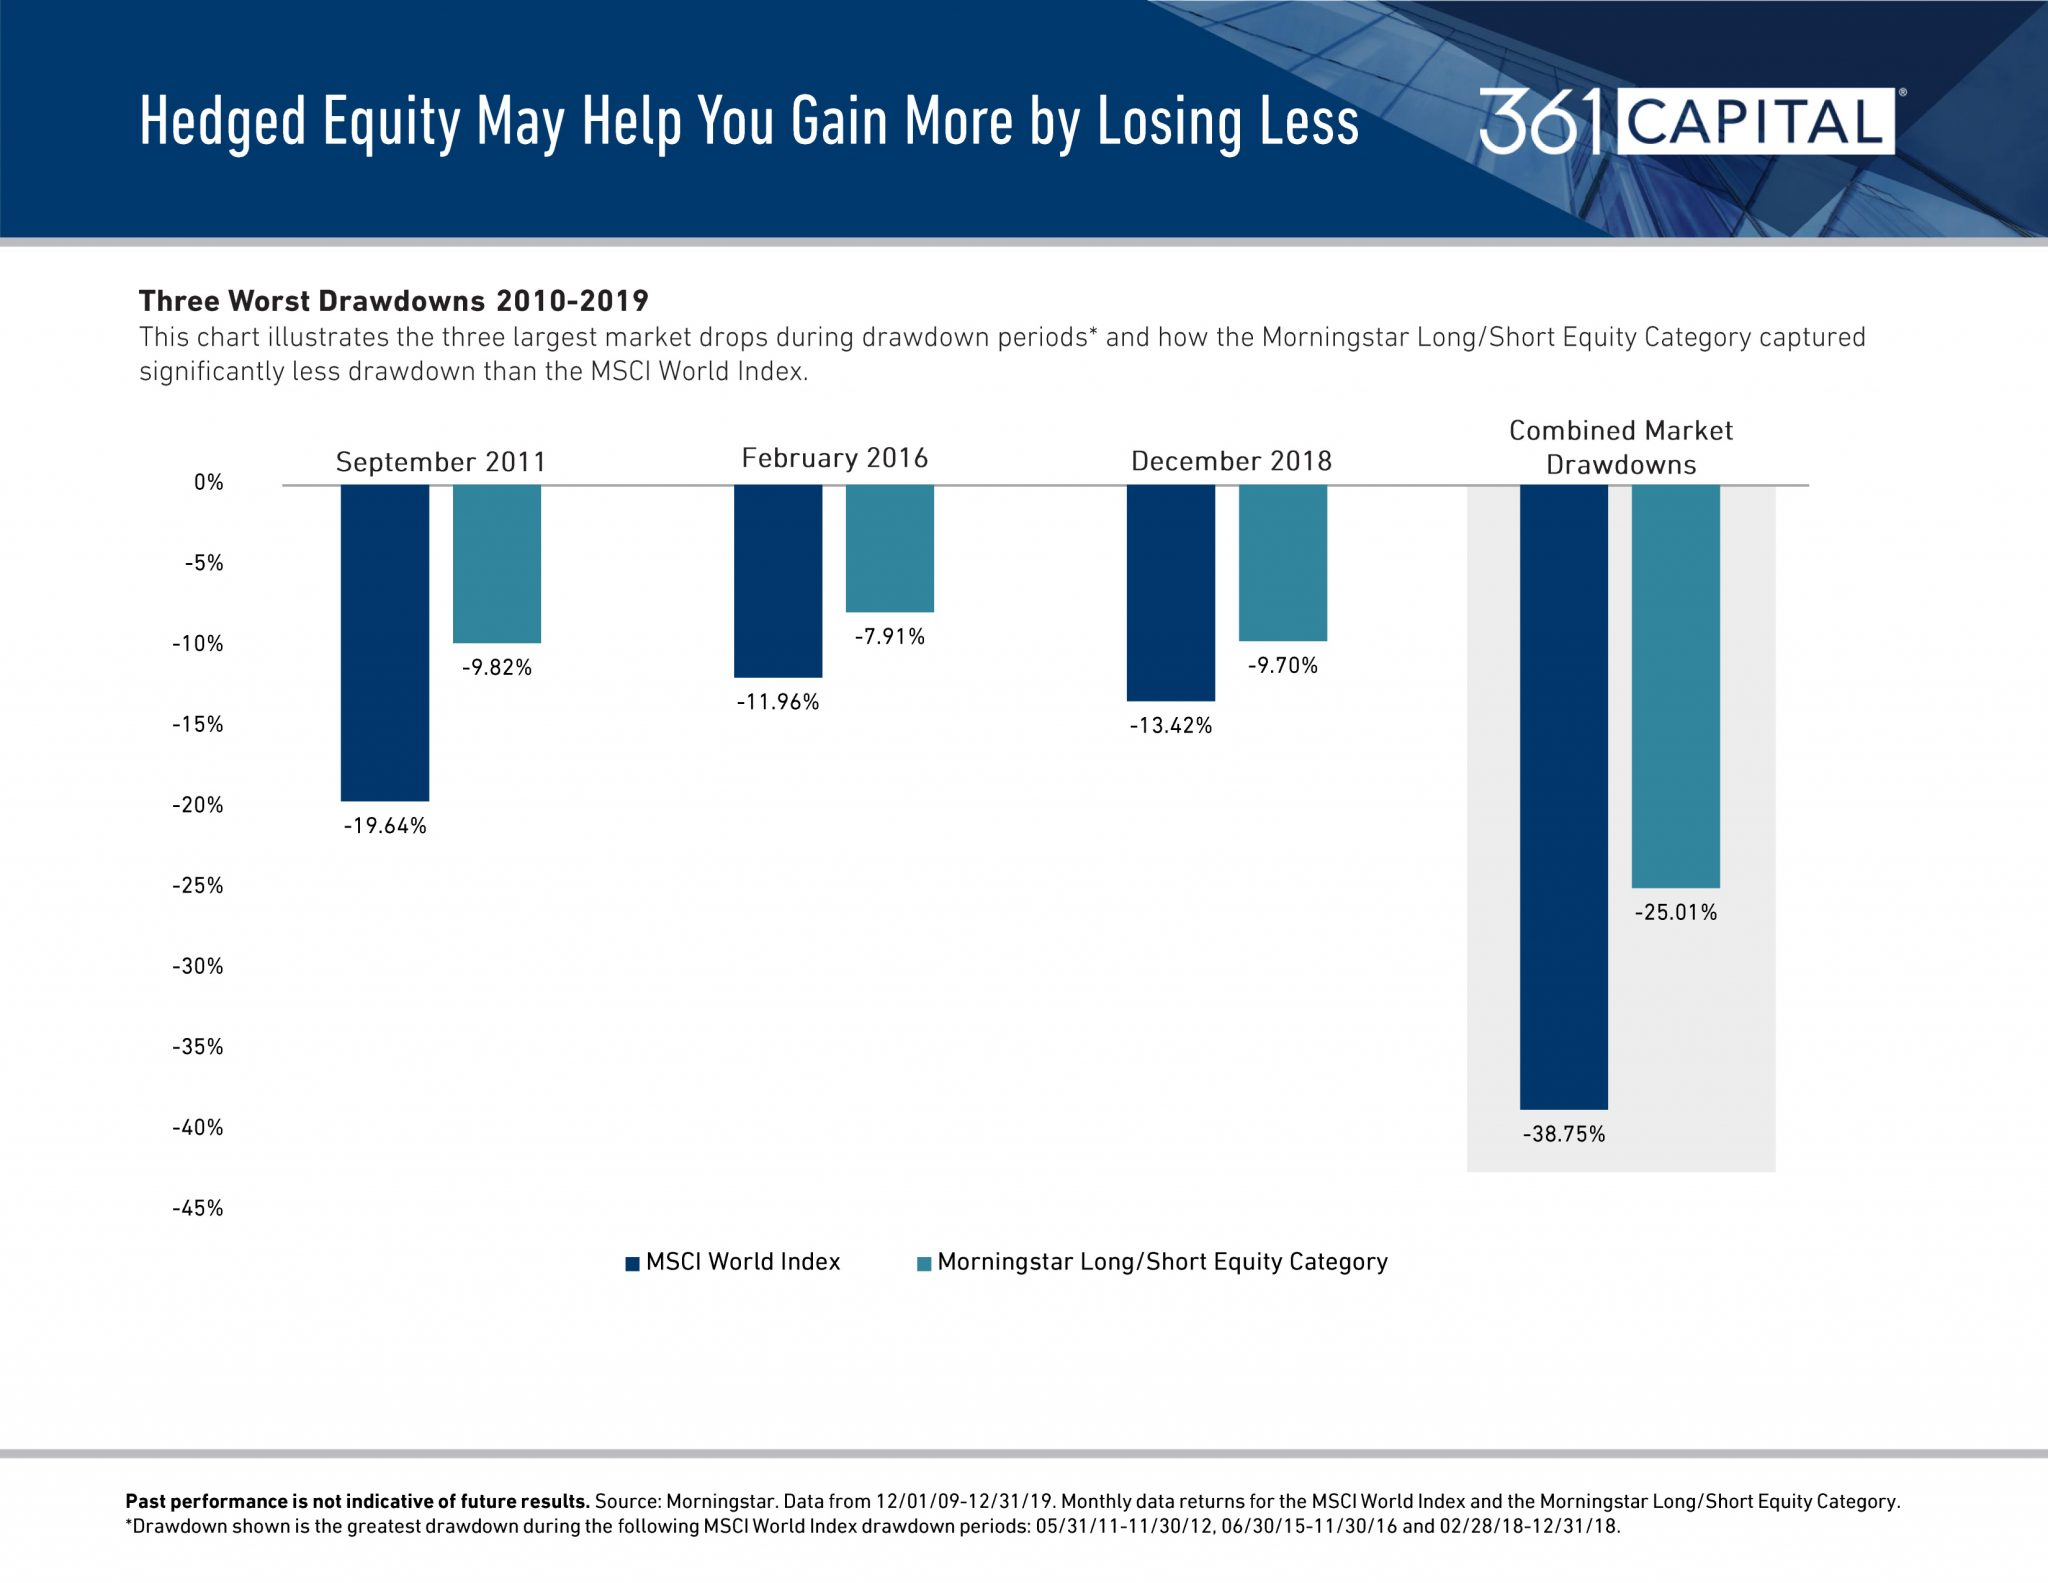 This chart illustrates the three largest market drops during the drawdown periods and how the Morningstar Long Short Equity Category captured significantly less drawdown than the MSCI World Index